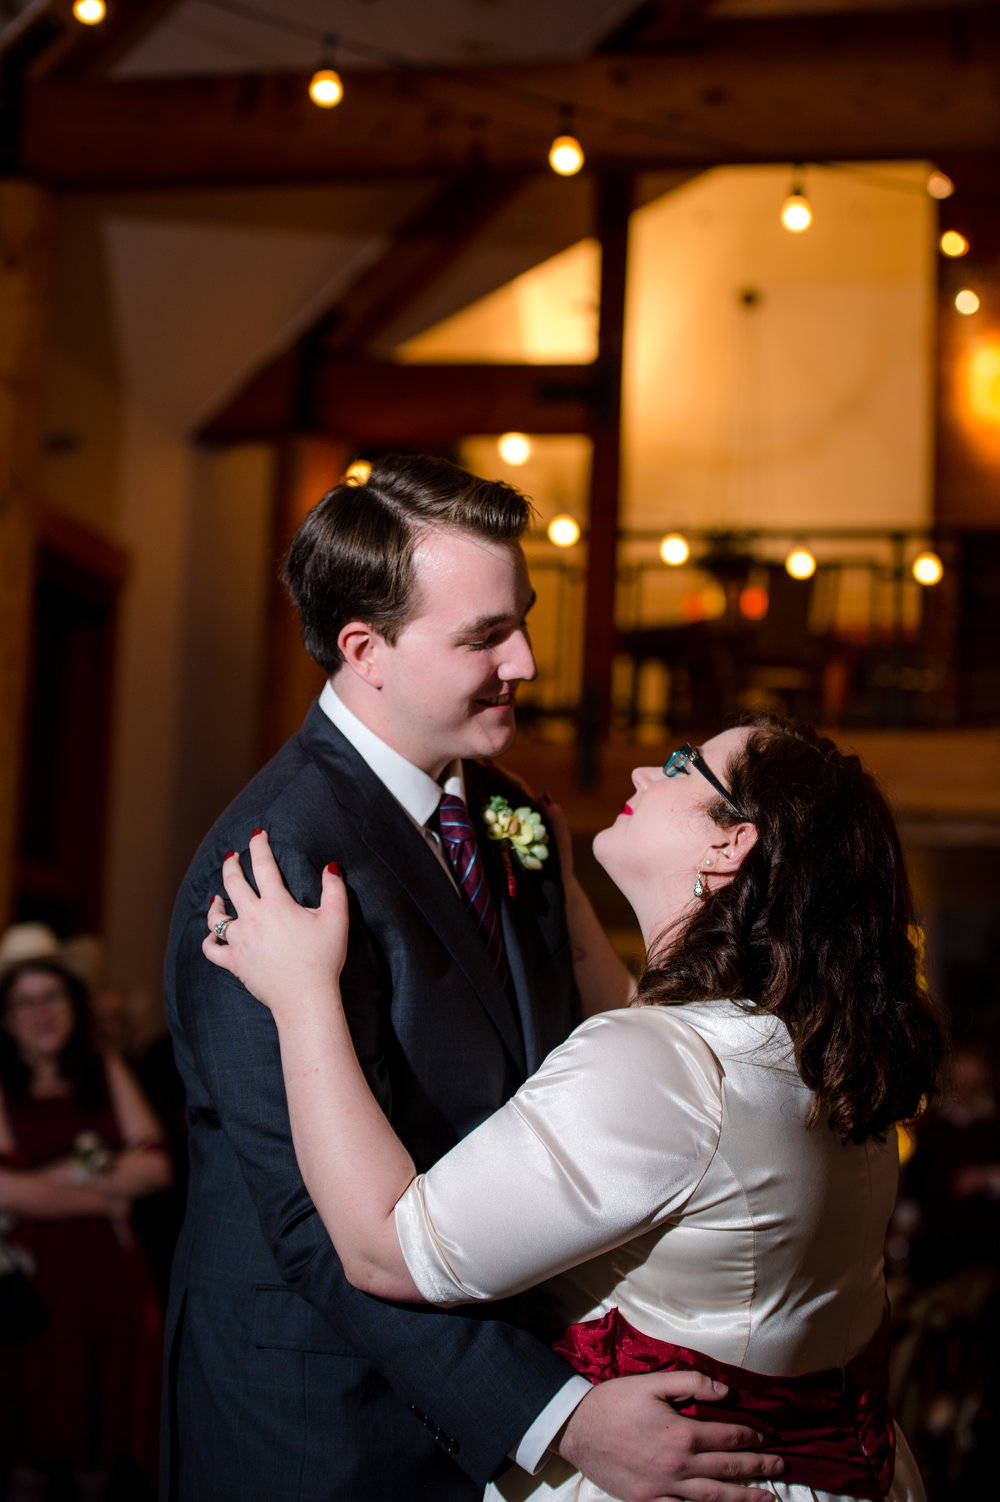 Rini Didier + Matt MacIsaac Wedding_Lodge at Falls City Wedding_Kelsey Lane Photography-0281.jpg